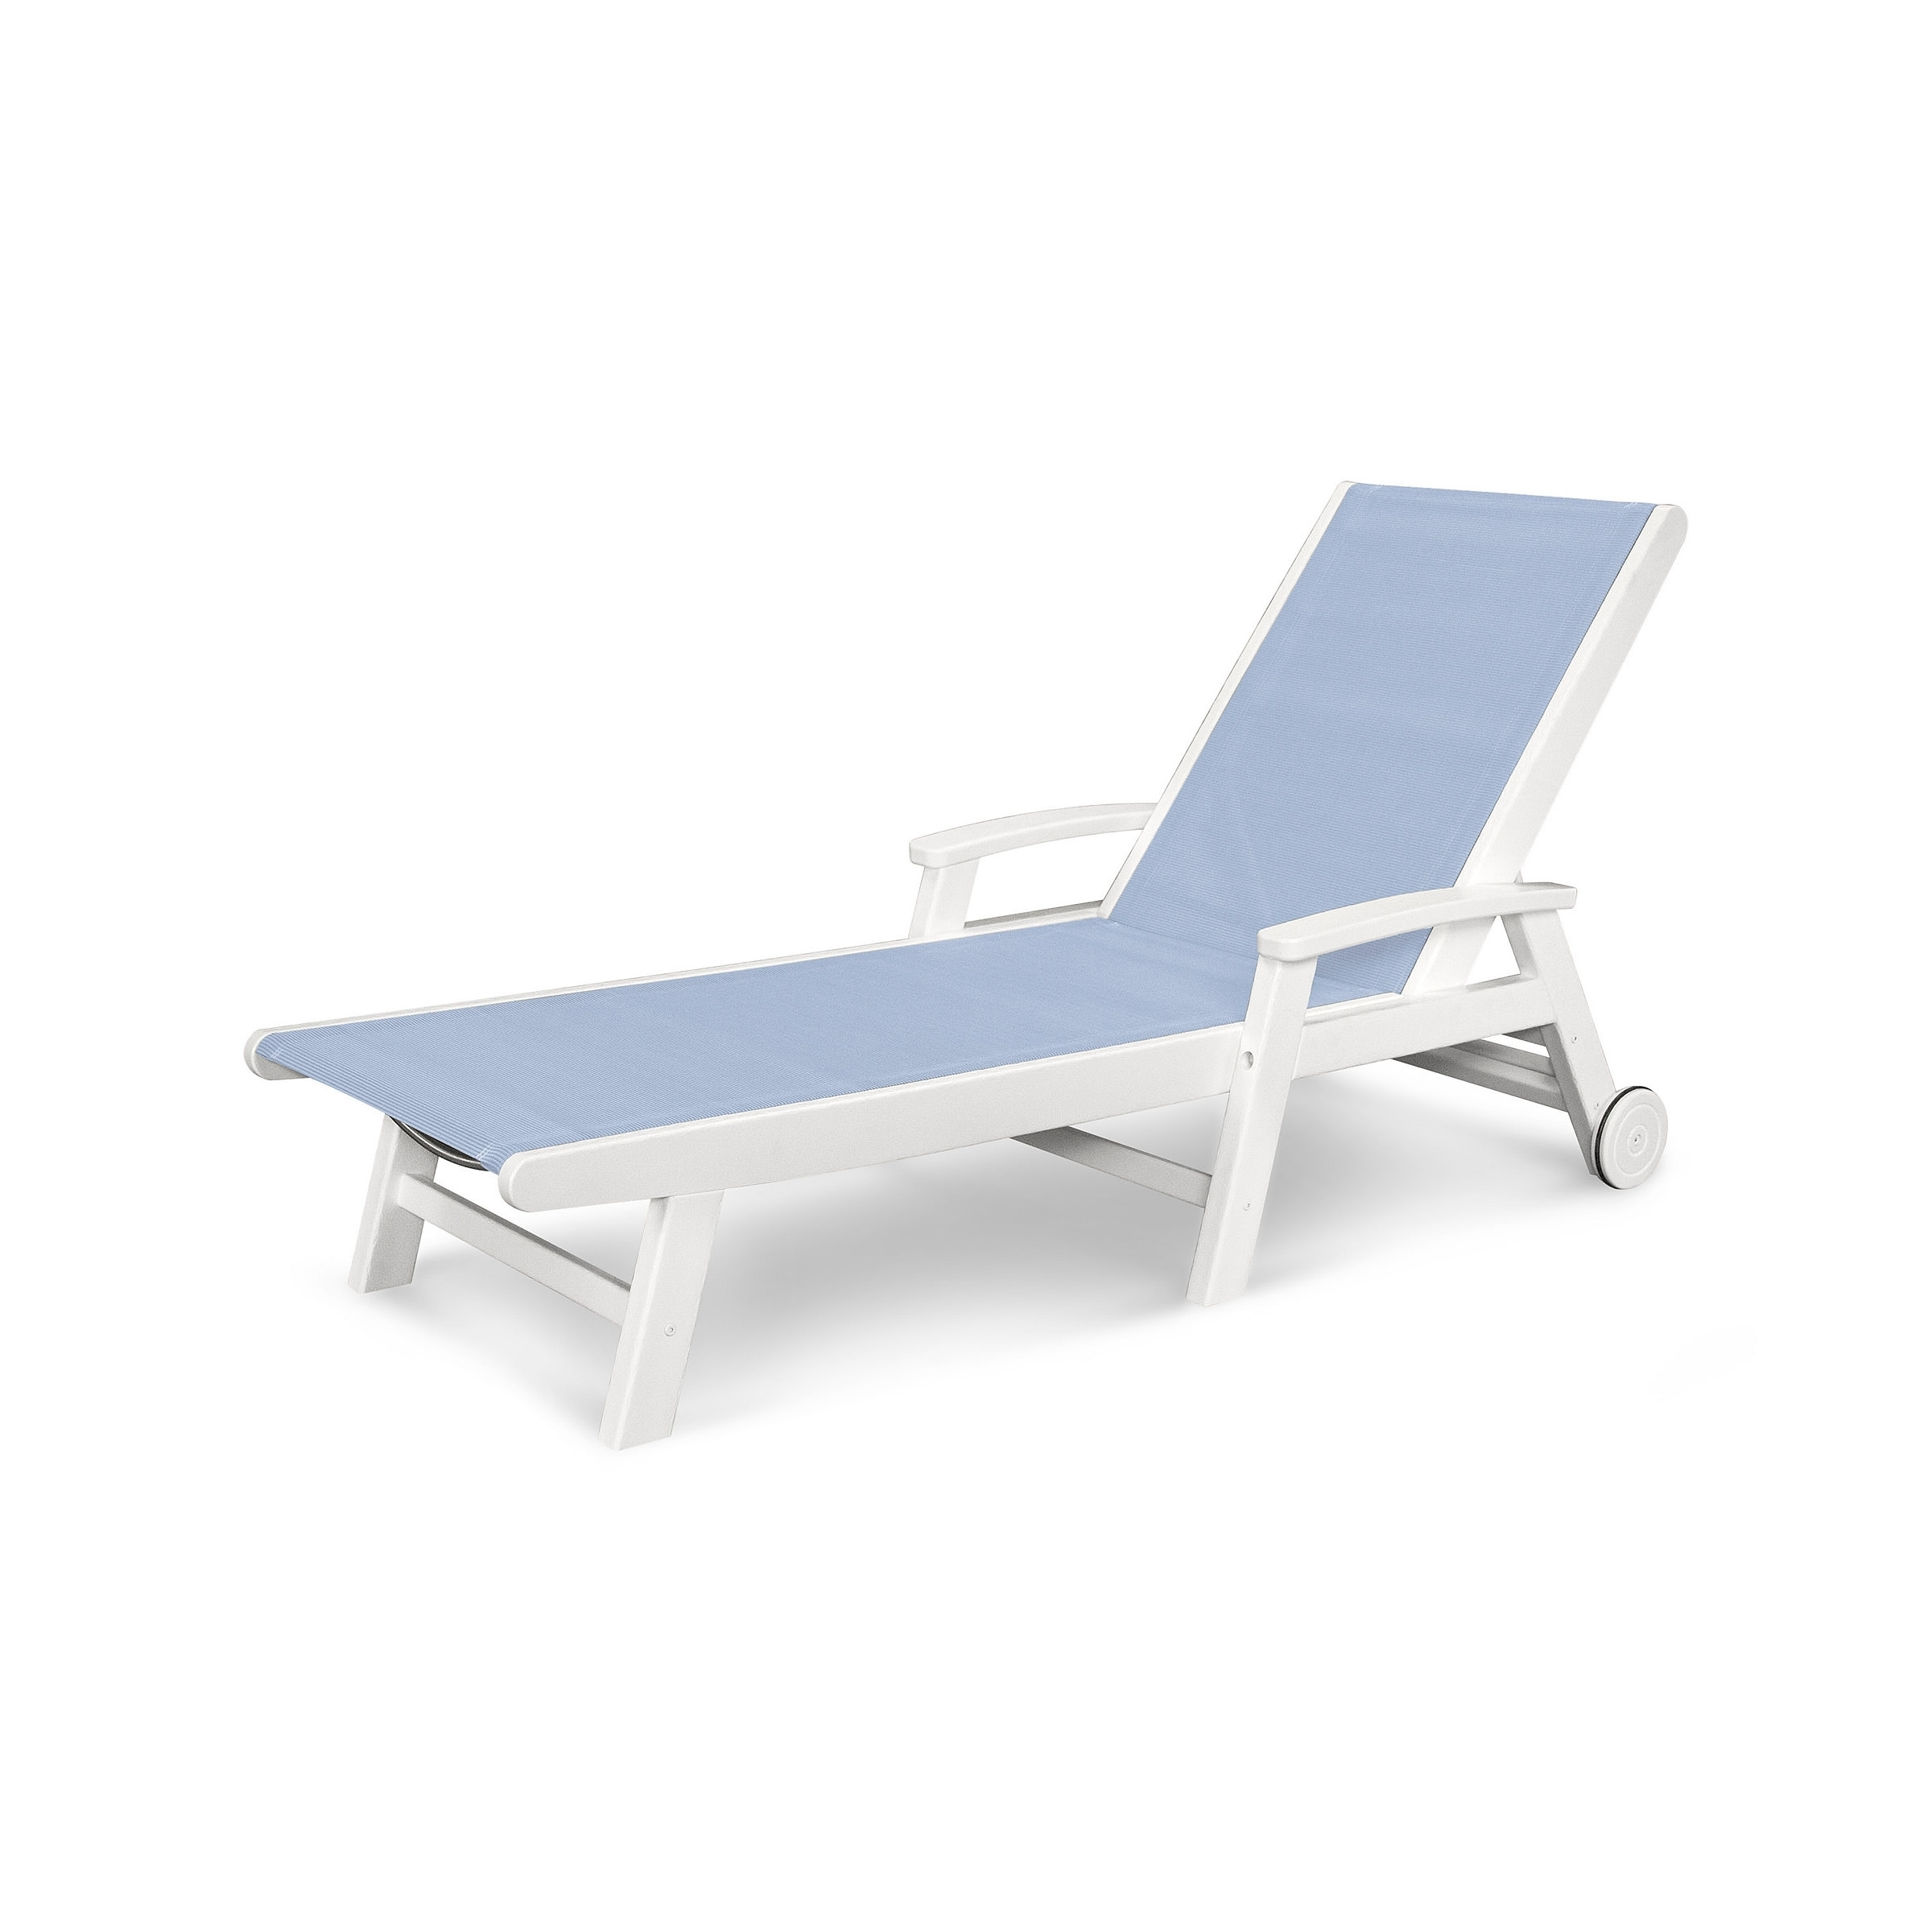 White Outdoor Chaise Lounges Intended For Most Current Polywood Furniture (View 12 of 15)